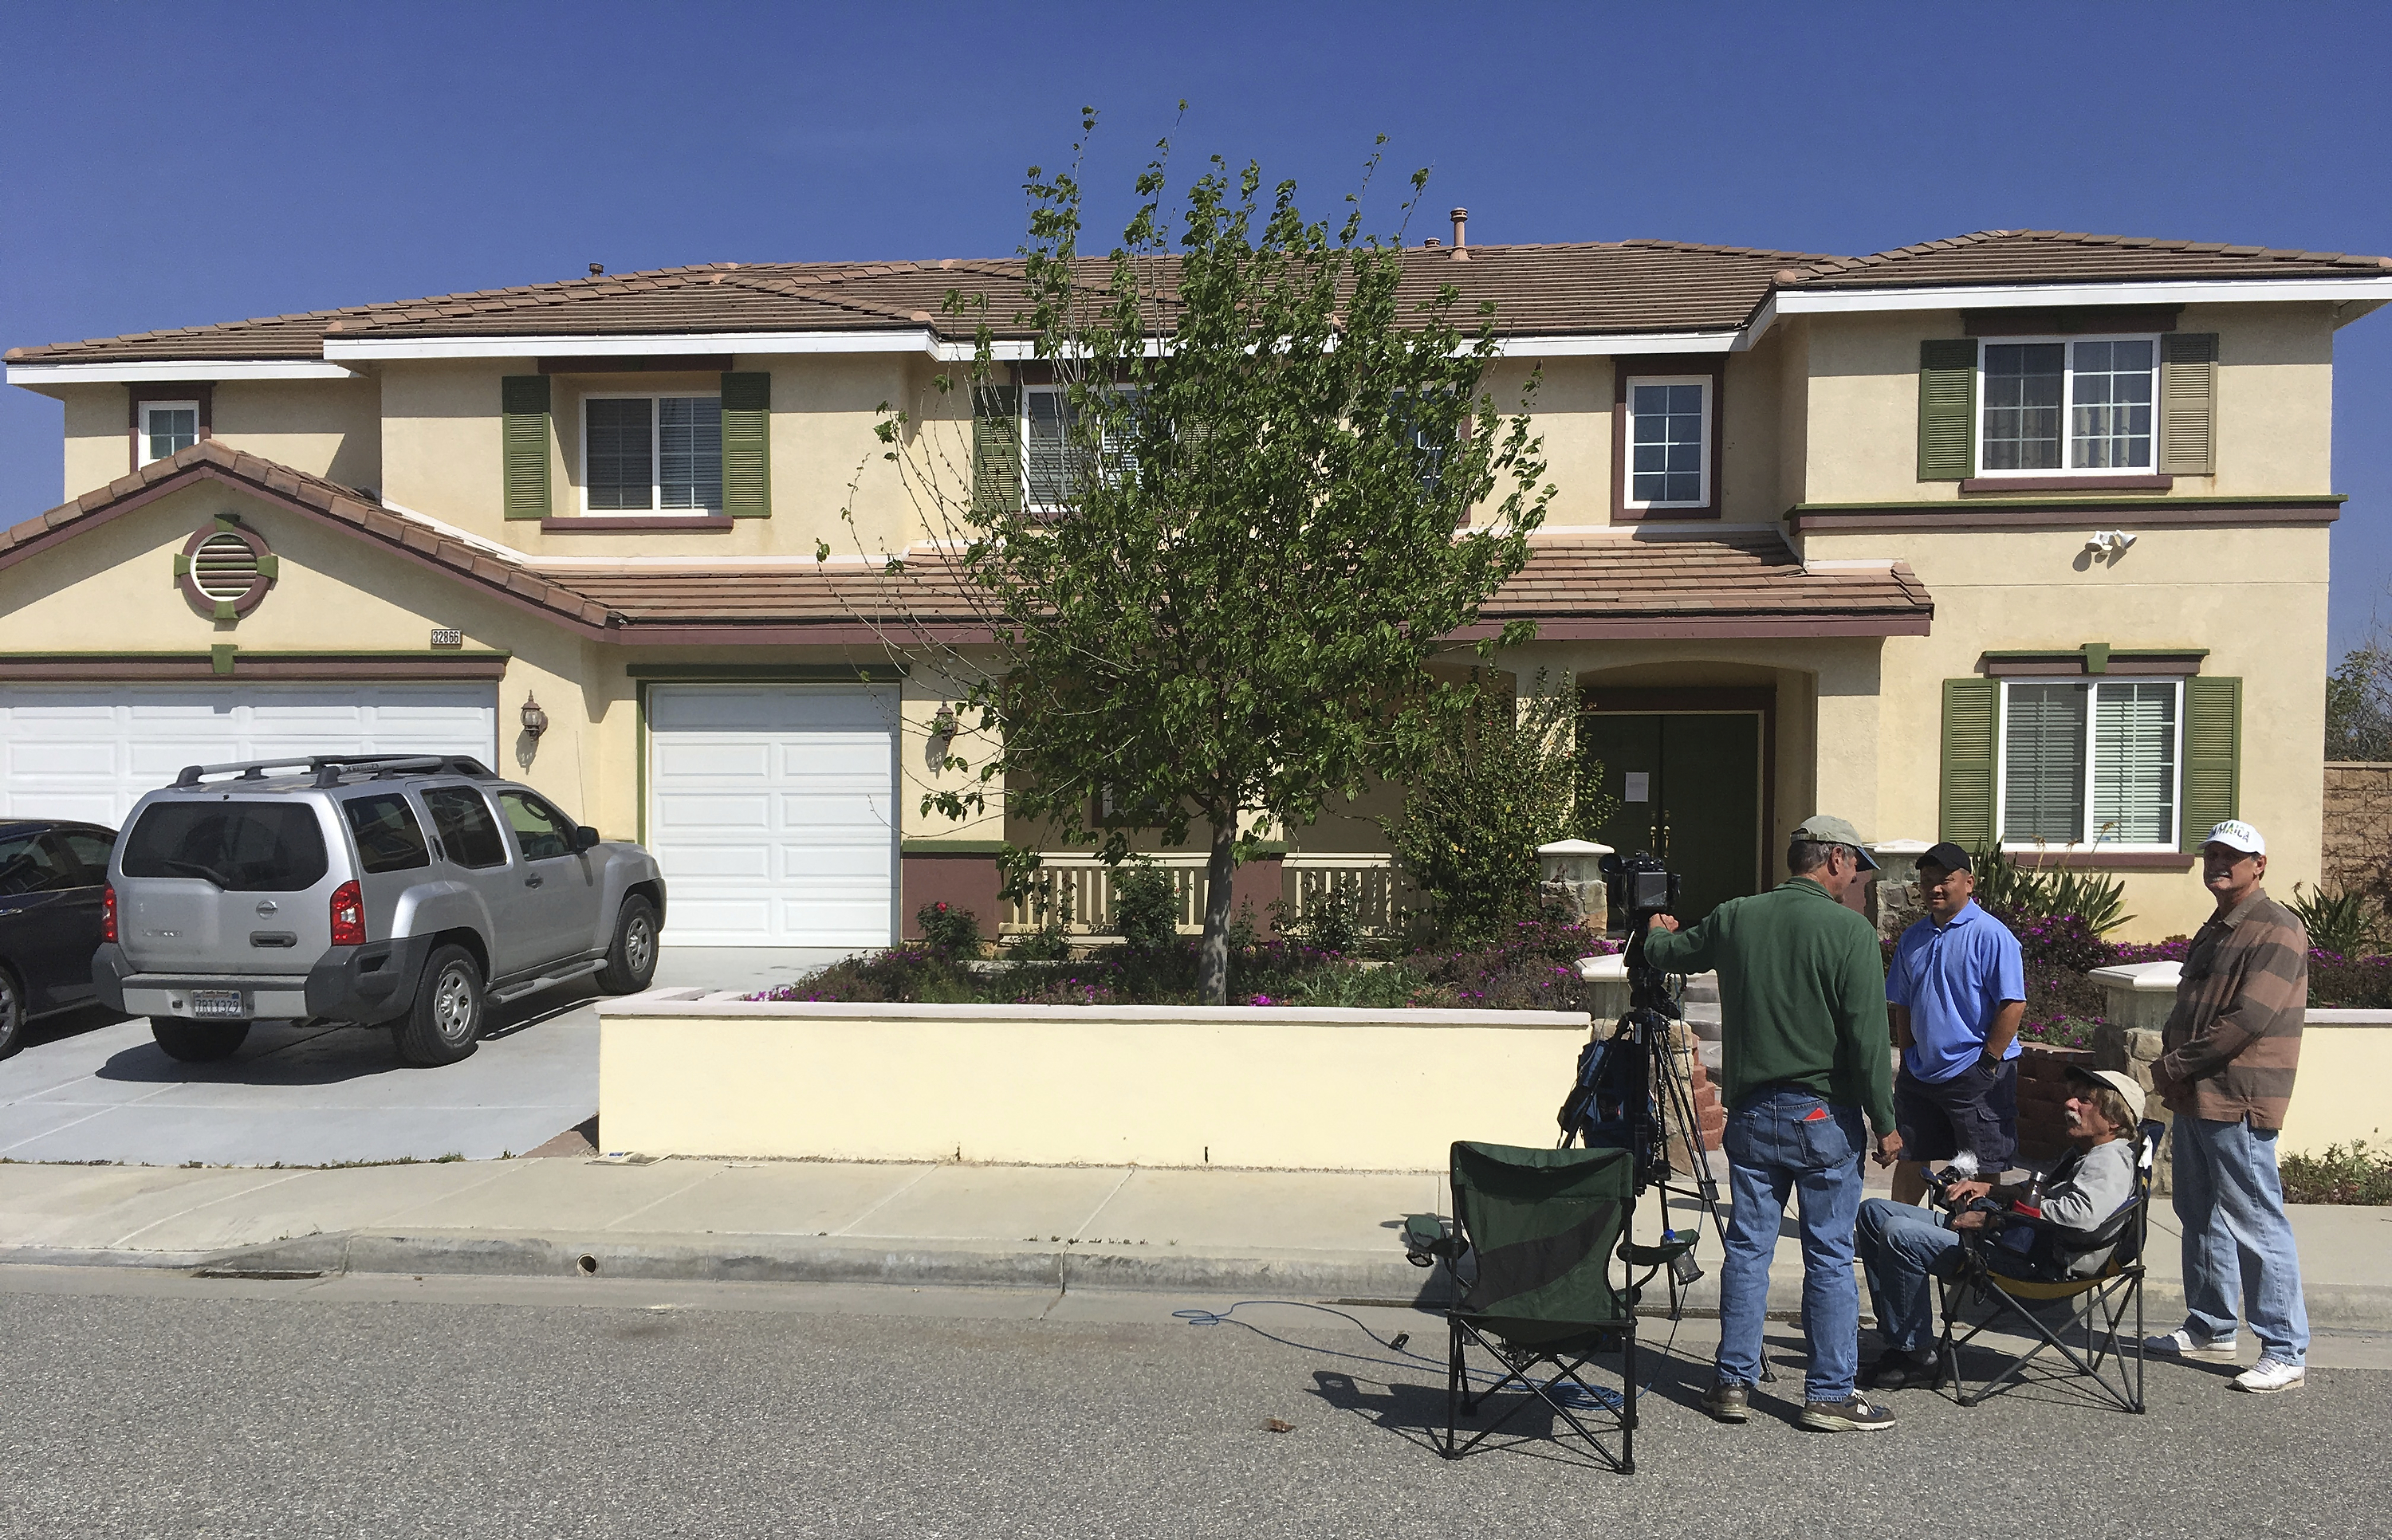 Members of the media stand outside the home of the YouTube shooter's parents in Menifee, Calif., Wednesday, April 4, 2018. The shooter, Nasim Aghdam, had lived in Menifee, Calif., southeast of Los Angeles about five years ago. (AP Photo/Elliot Spagat)